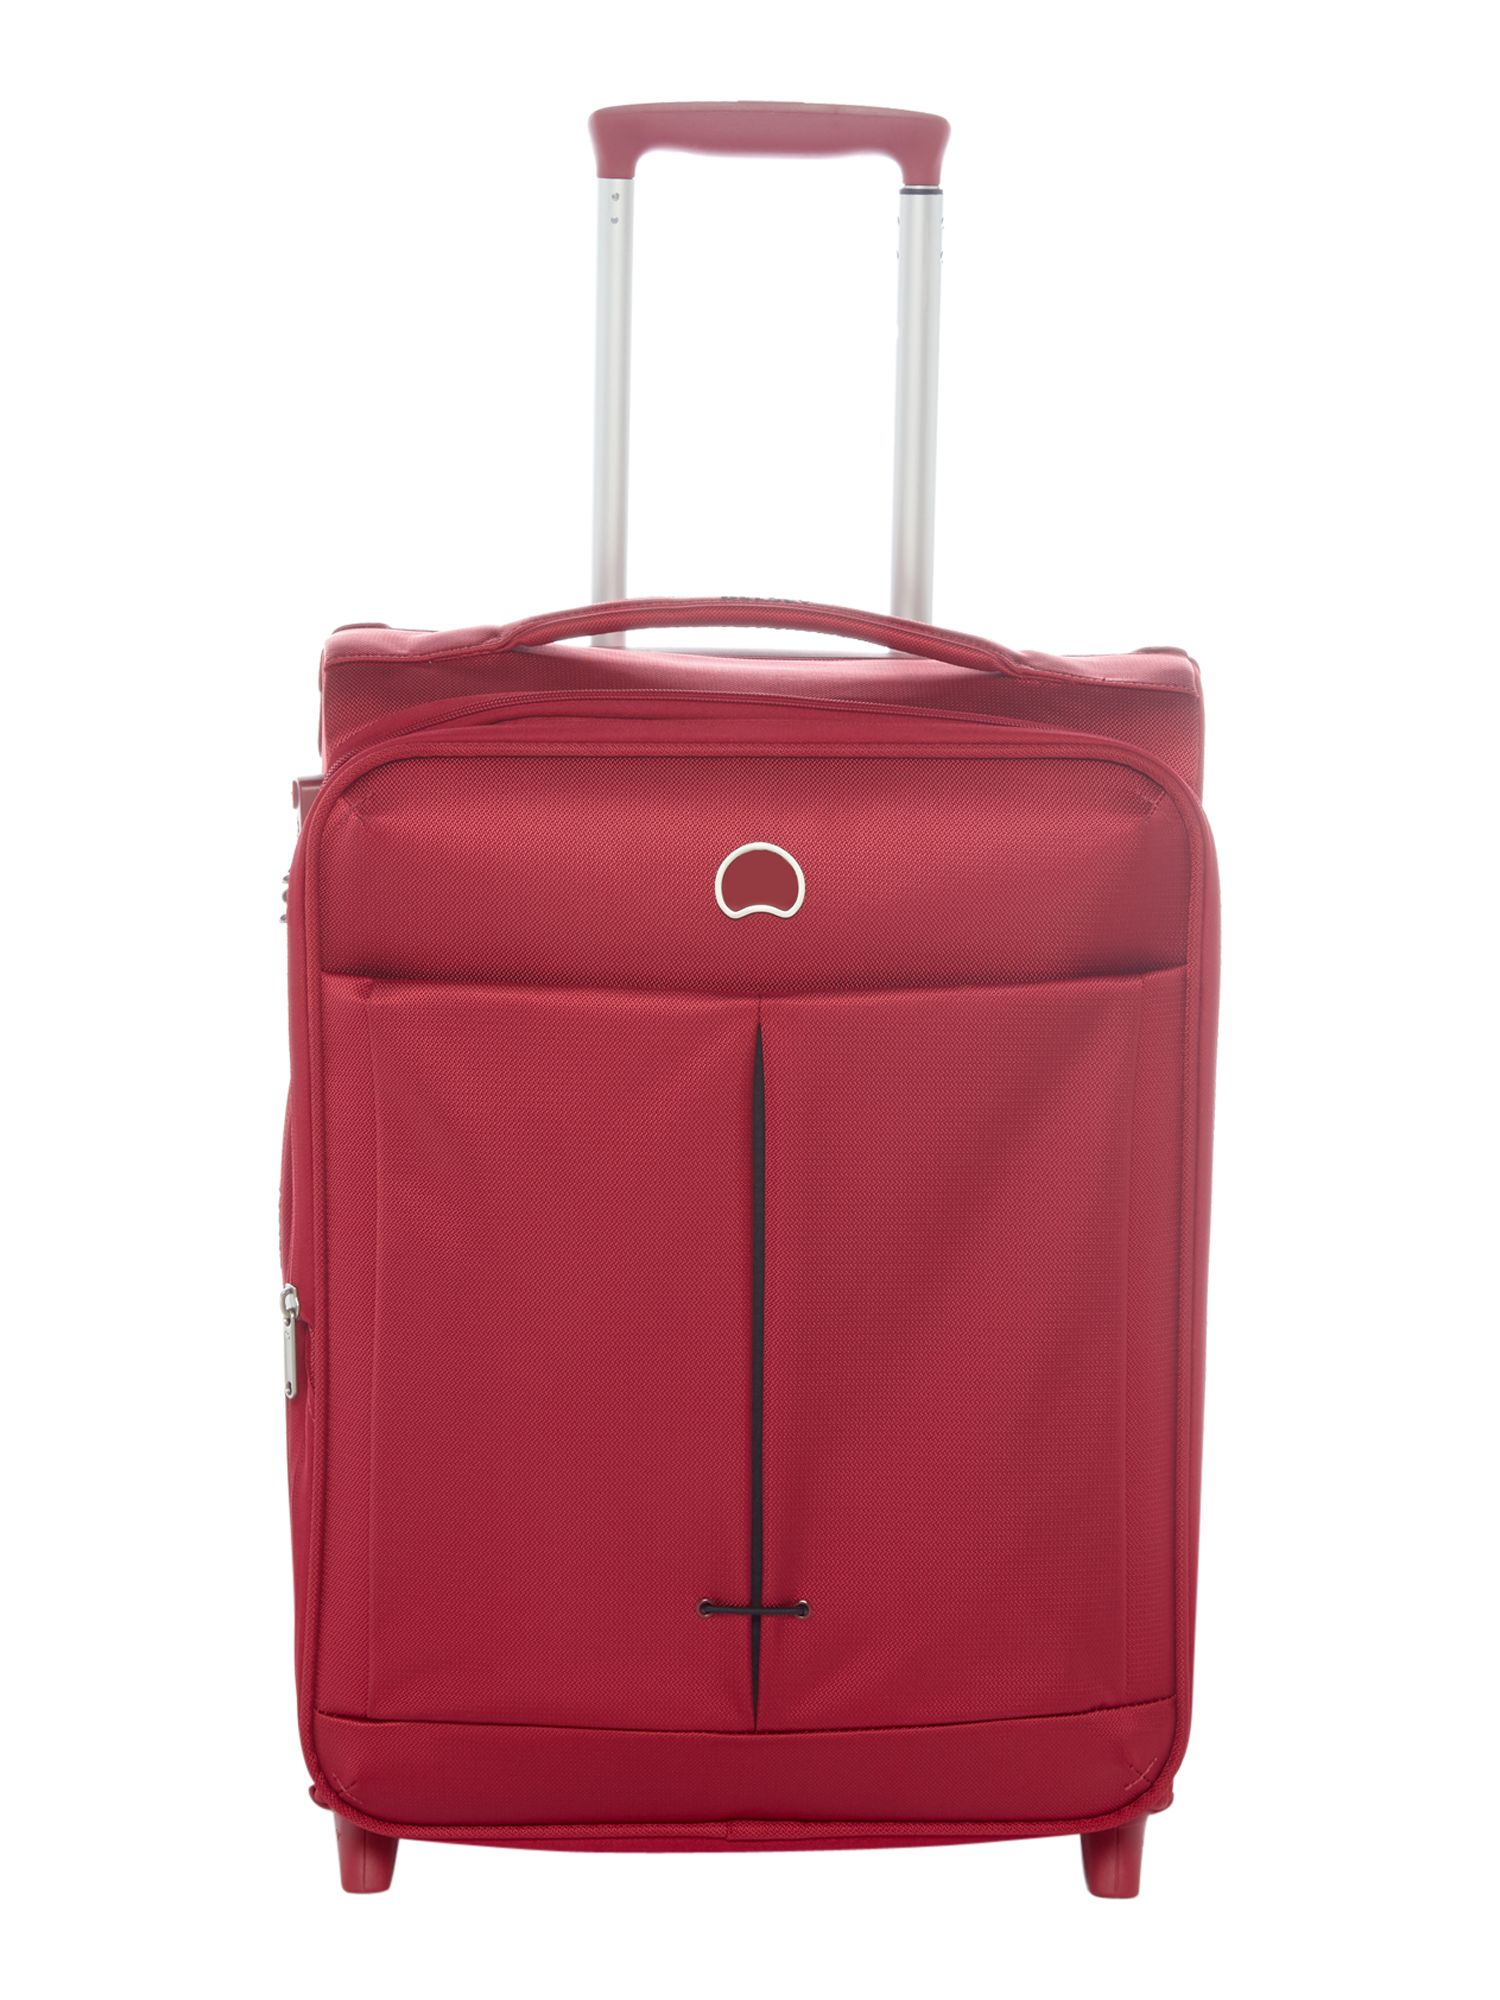 Delsey Air Adventure 55cm 4 Wheel Cabin Red Suitcase, Red